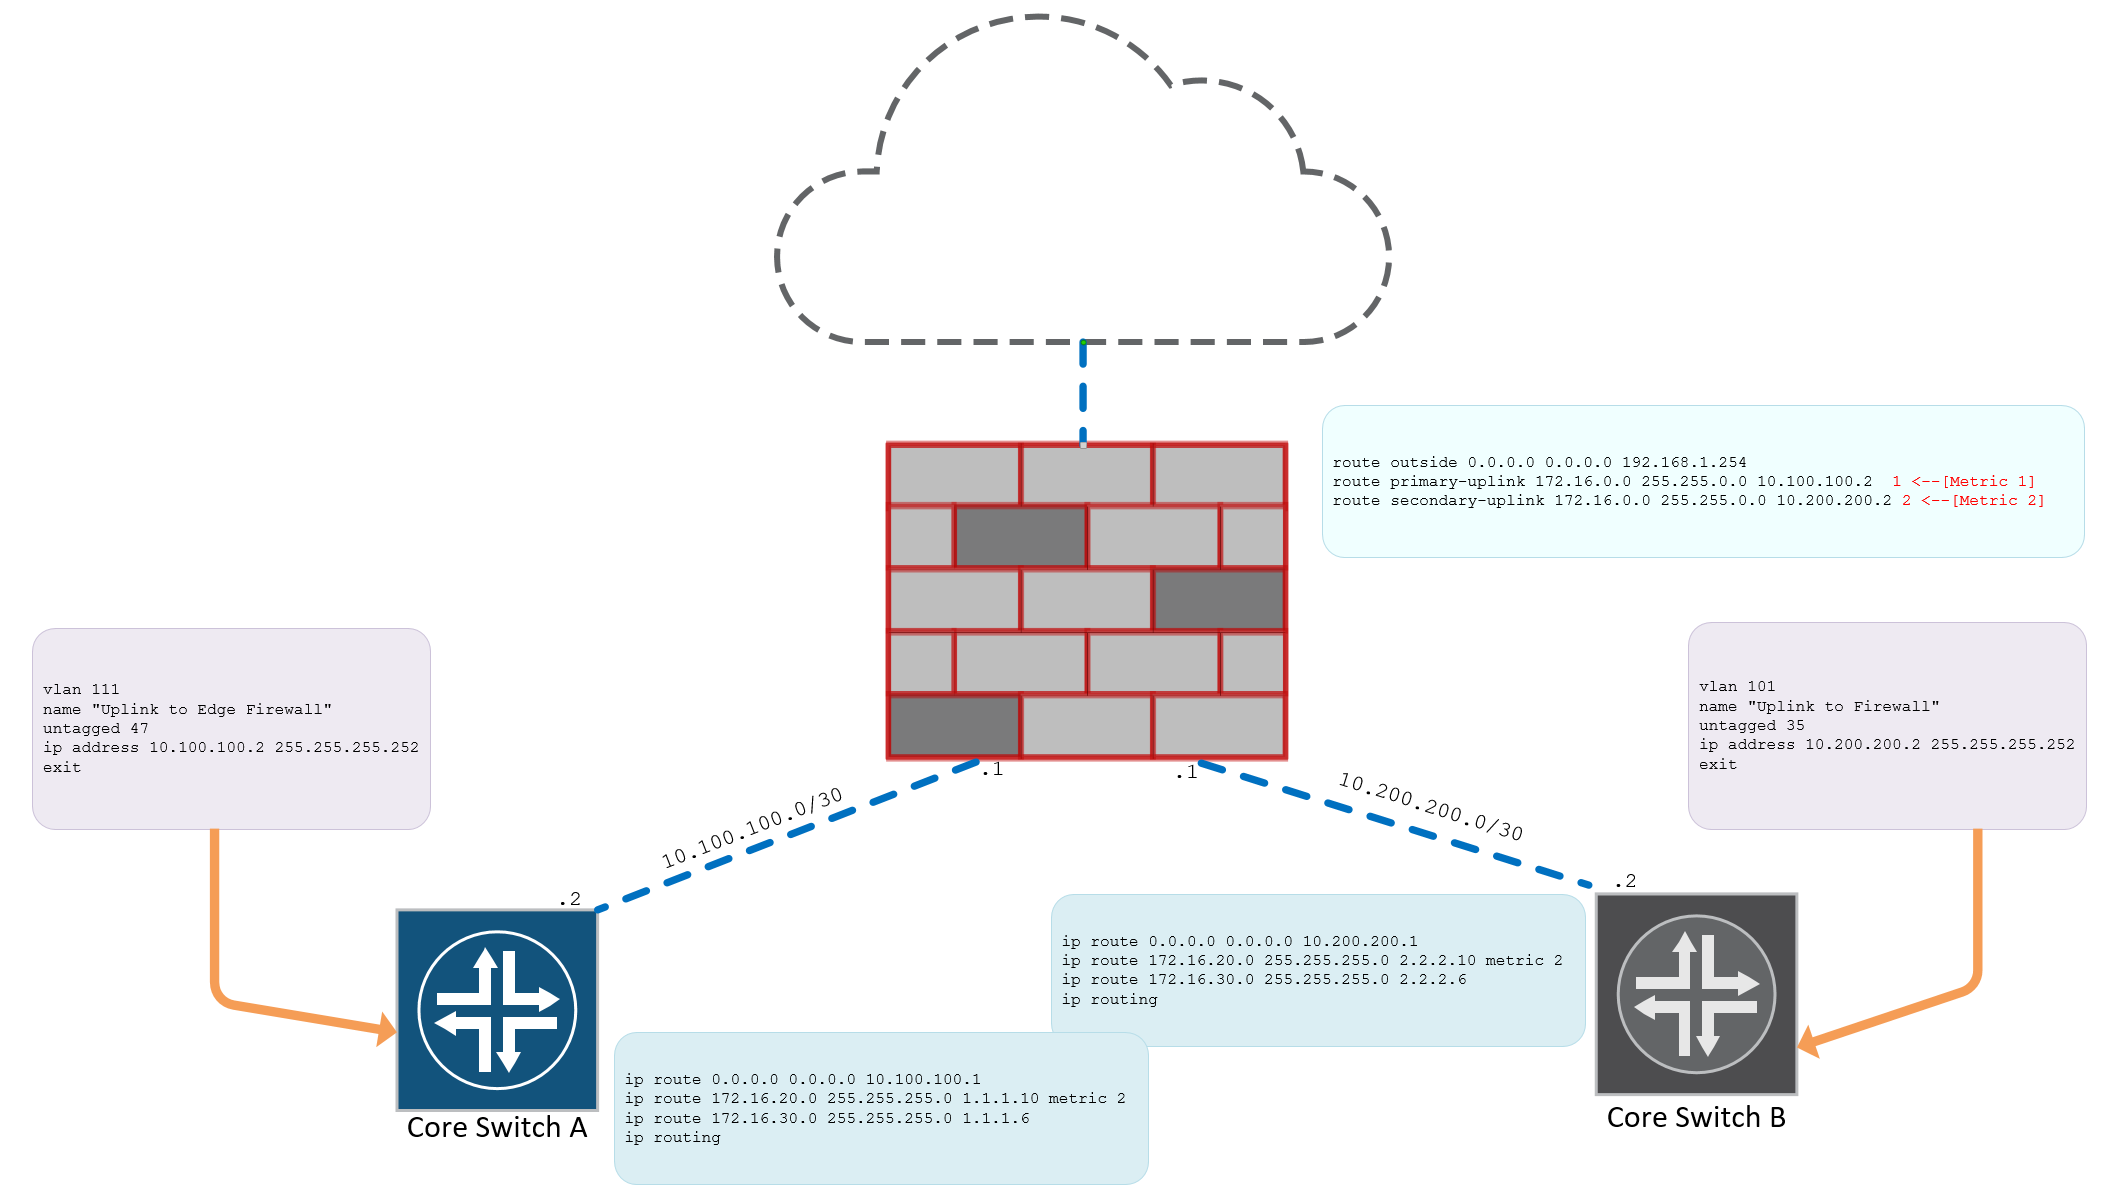 Configuring the Routed Enterprise Campus Network - Expert